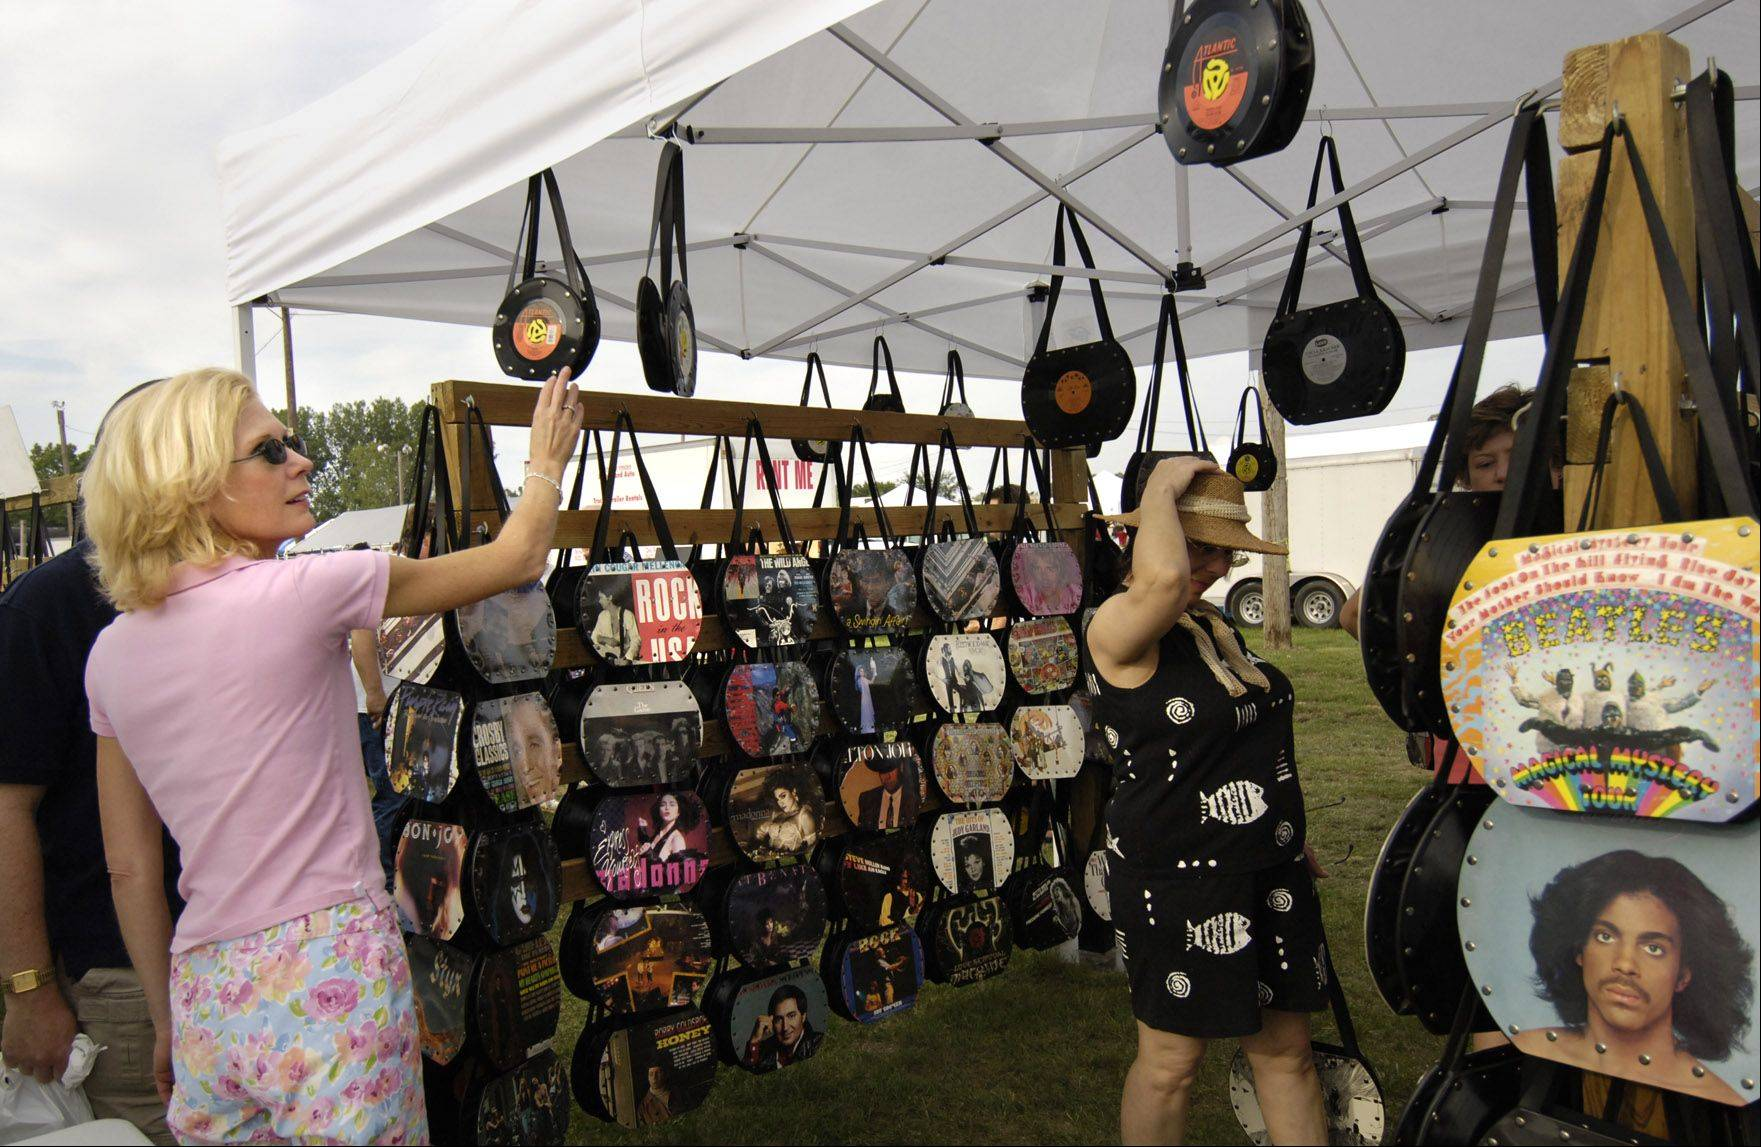 Shoppers at the All Night Flea Market in Wheaton will find everything from antiques to vintage clothing and handmade items.